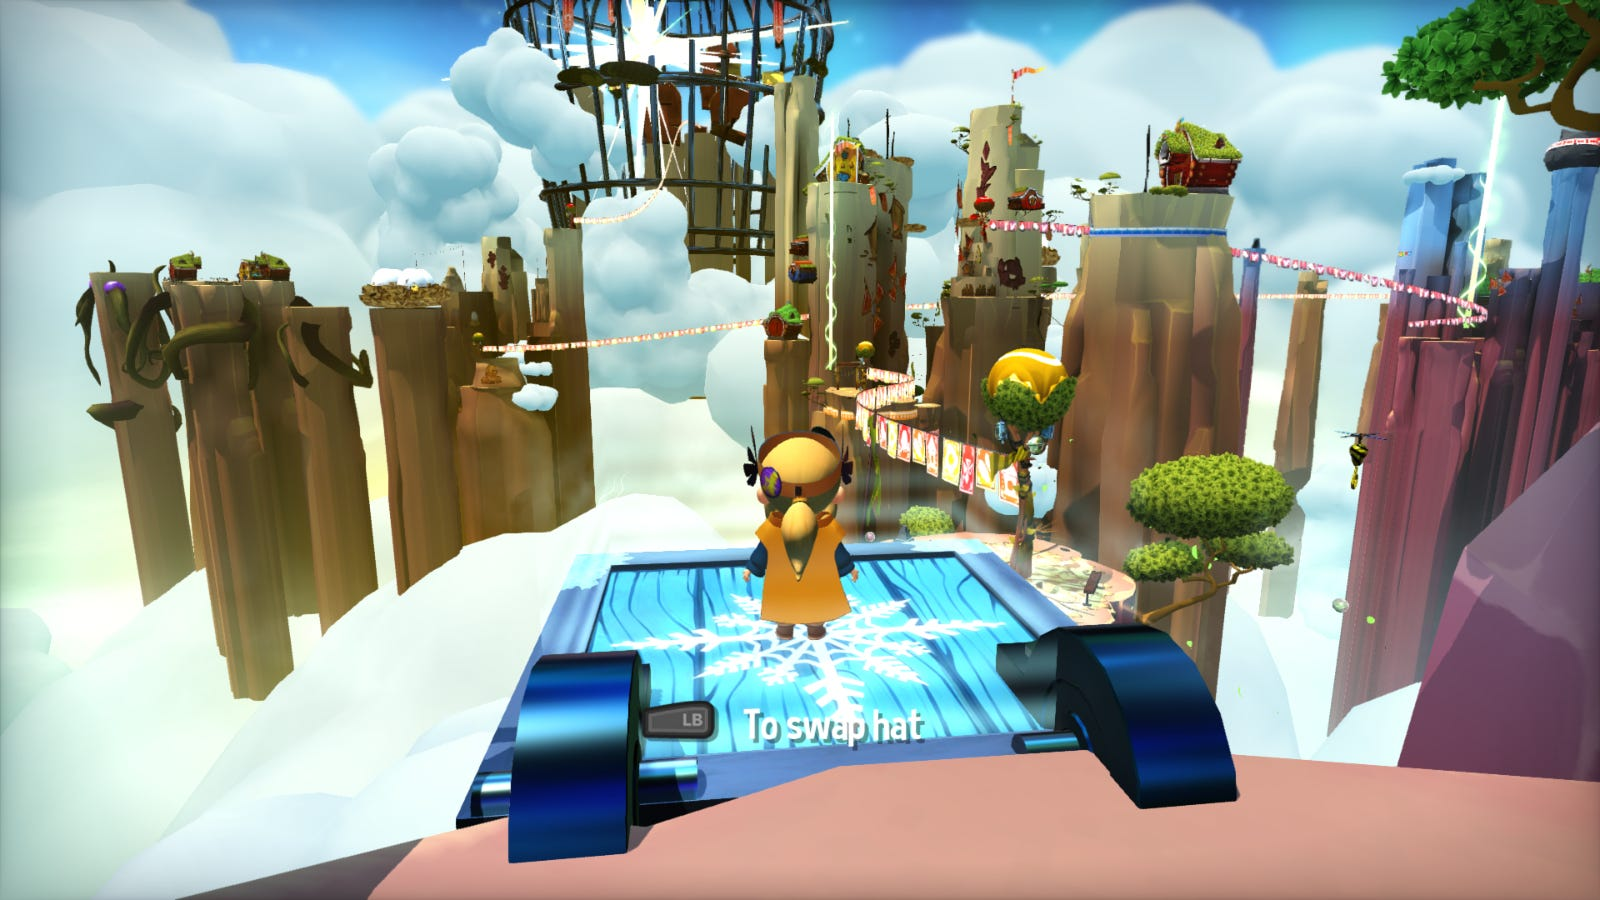 Hat Kid standing before a large, open world in the clouds in 'A Hat in Time'